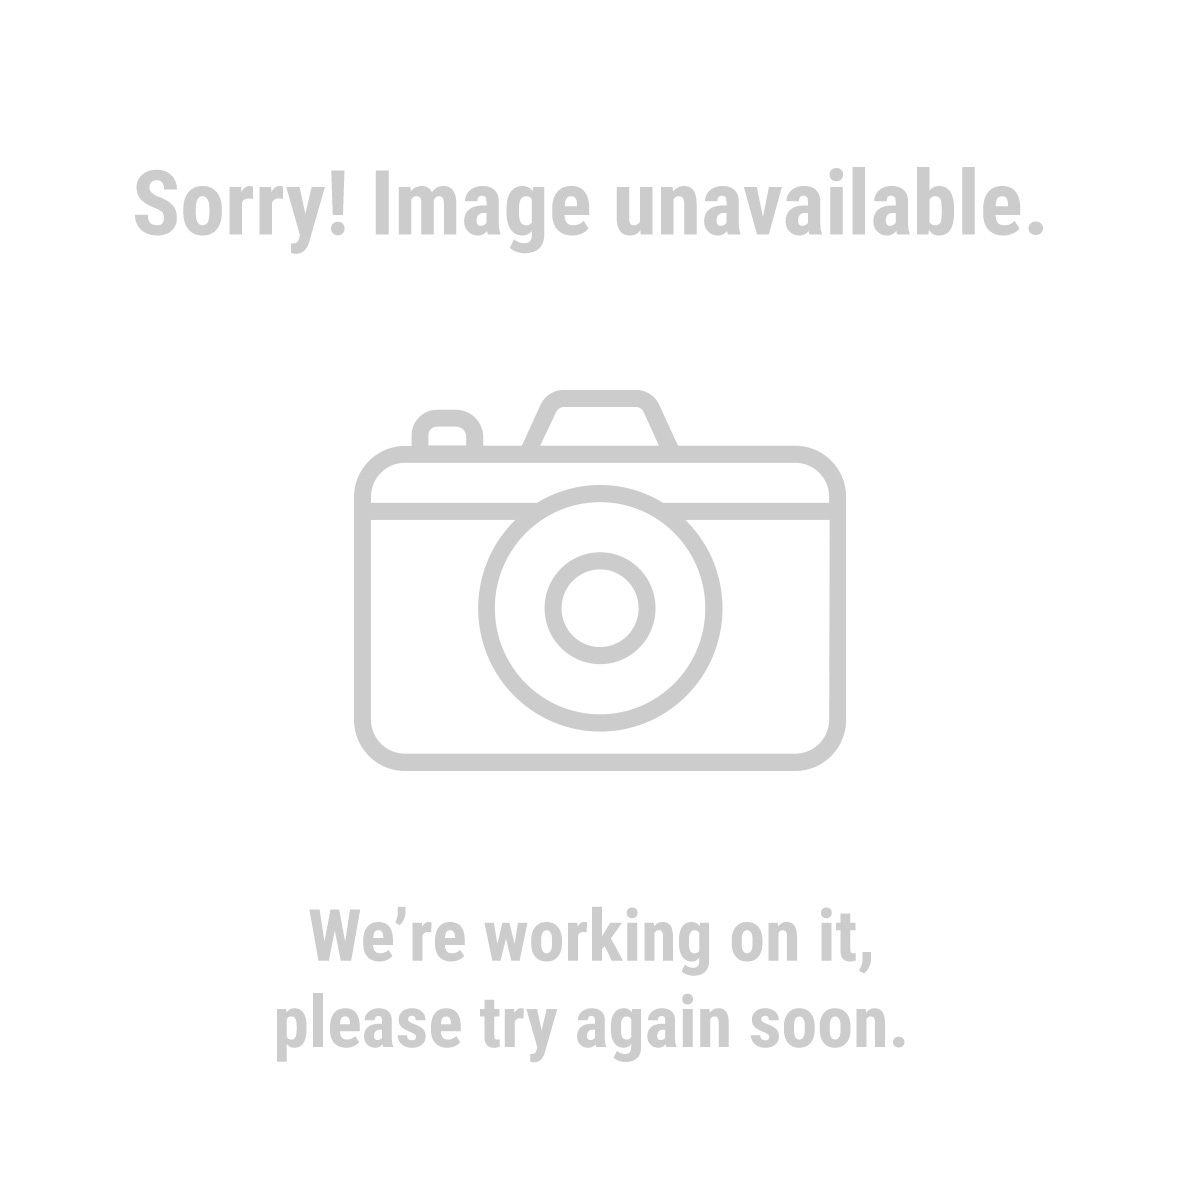 Cen-Tech 92020 7 Function Digital Multimeter With Backlight